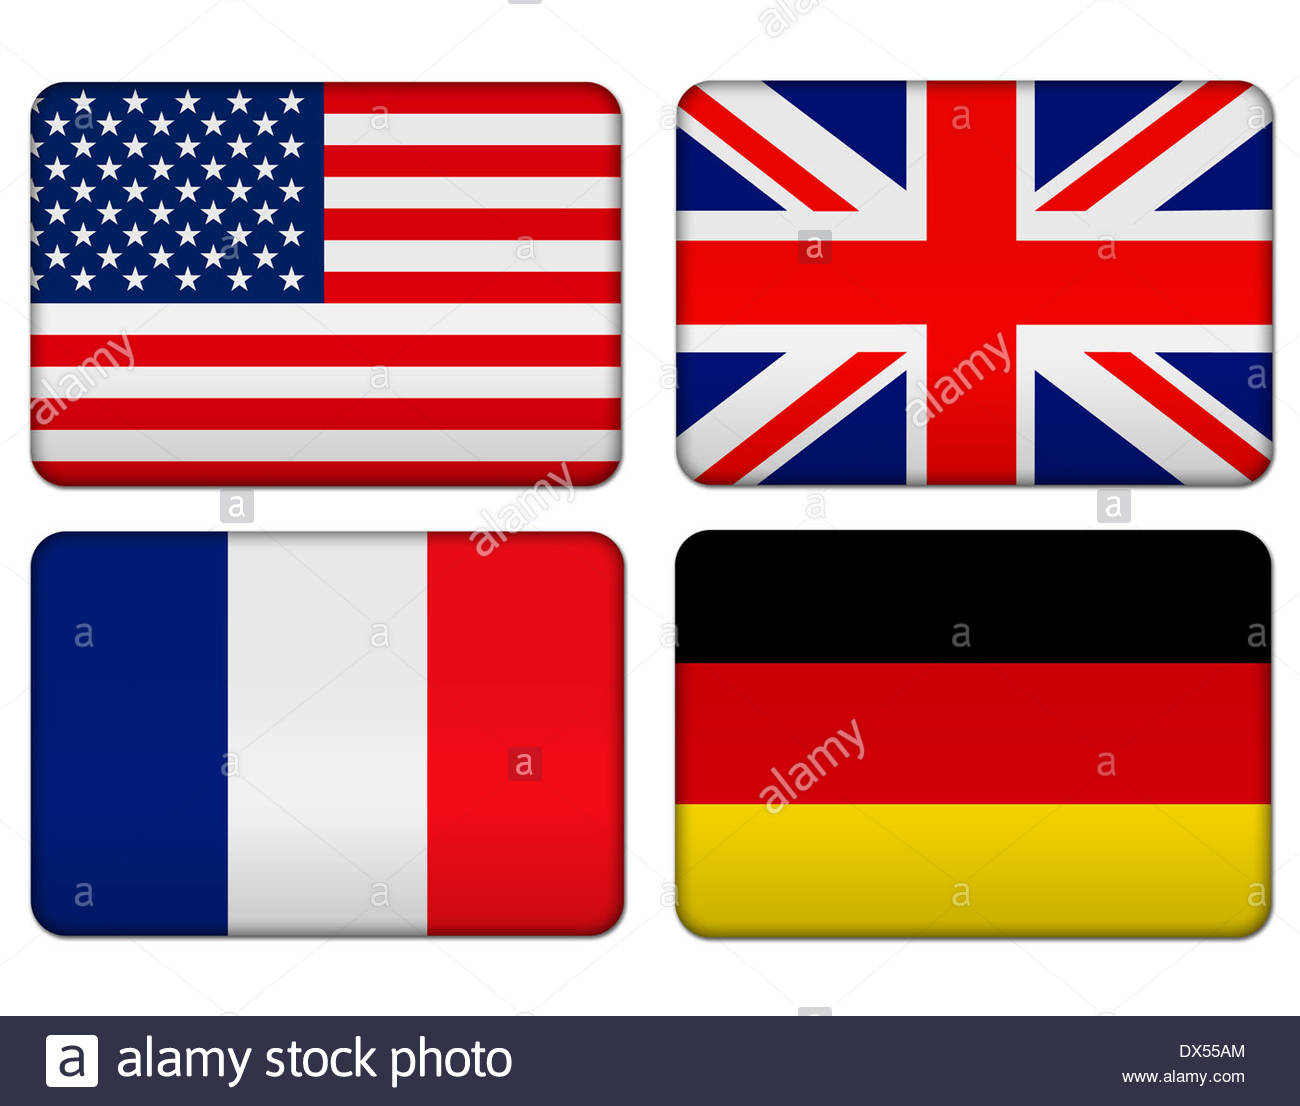 American, United Kingdom, France and Germany flag icon logo banner - Stock Image